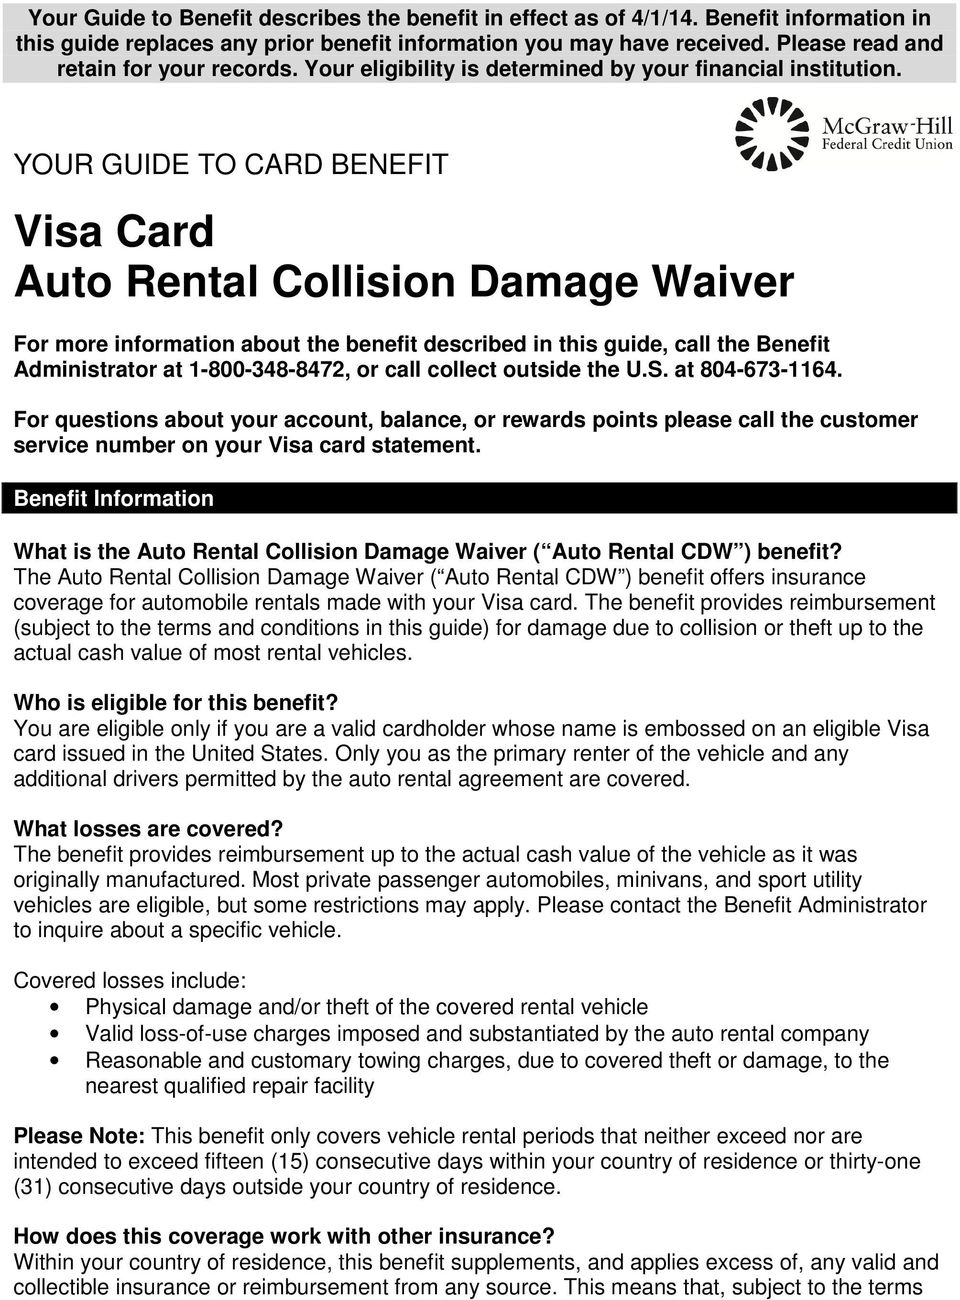 YOUR GUIDE TO CARD BENEFIT Visa Card Auto Rental Collision Damage Waiver For more information about the benefit described in this guide, call the Benefit Administrator at 1-800-348-8472, or call